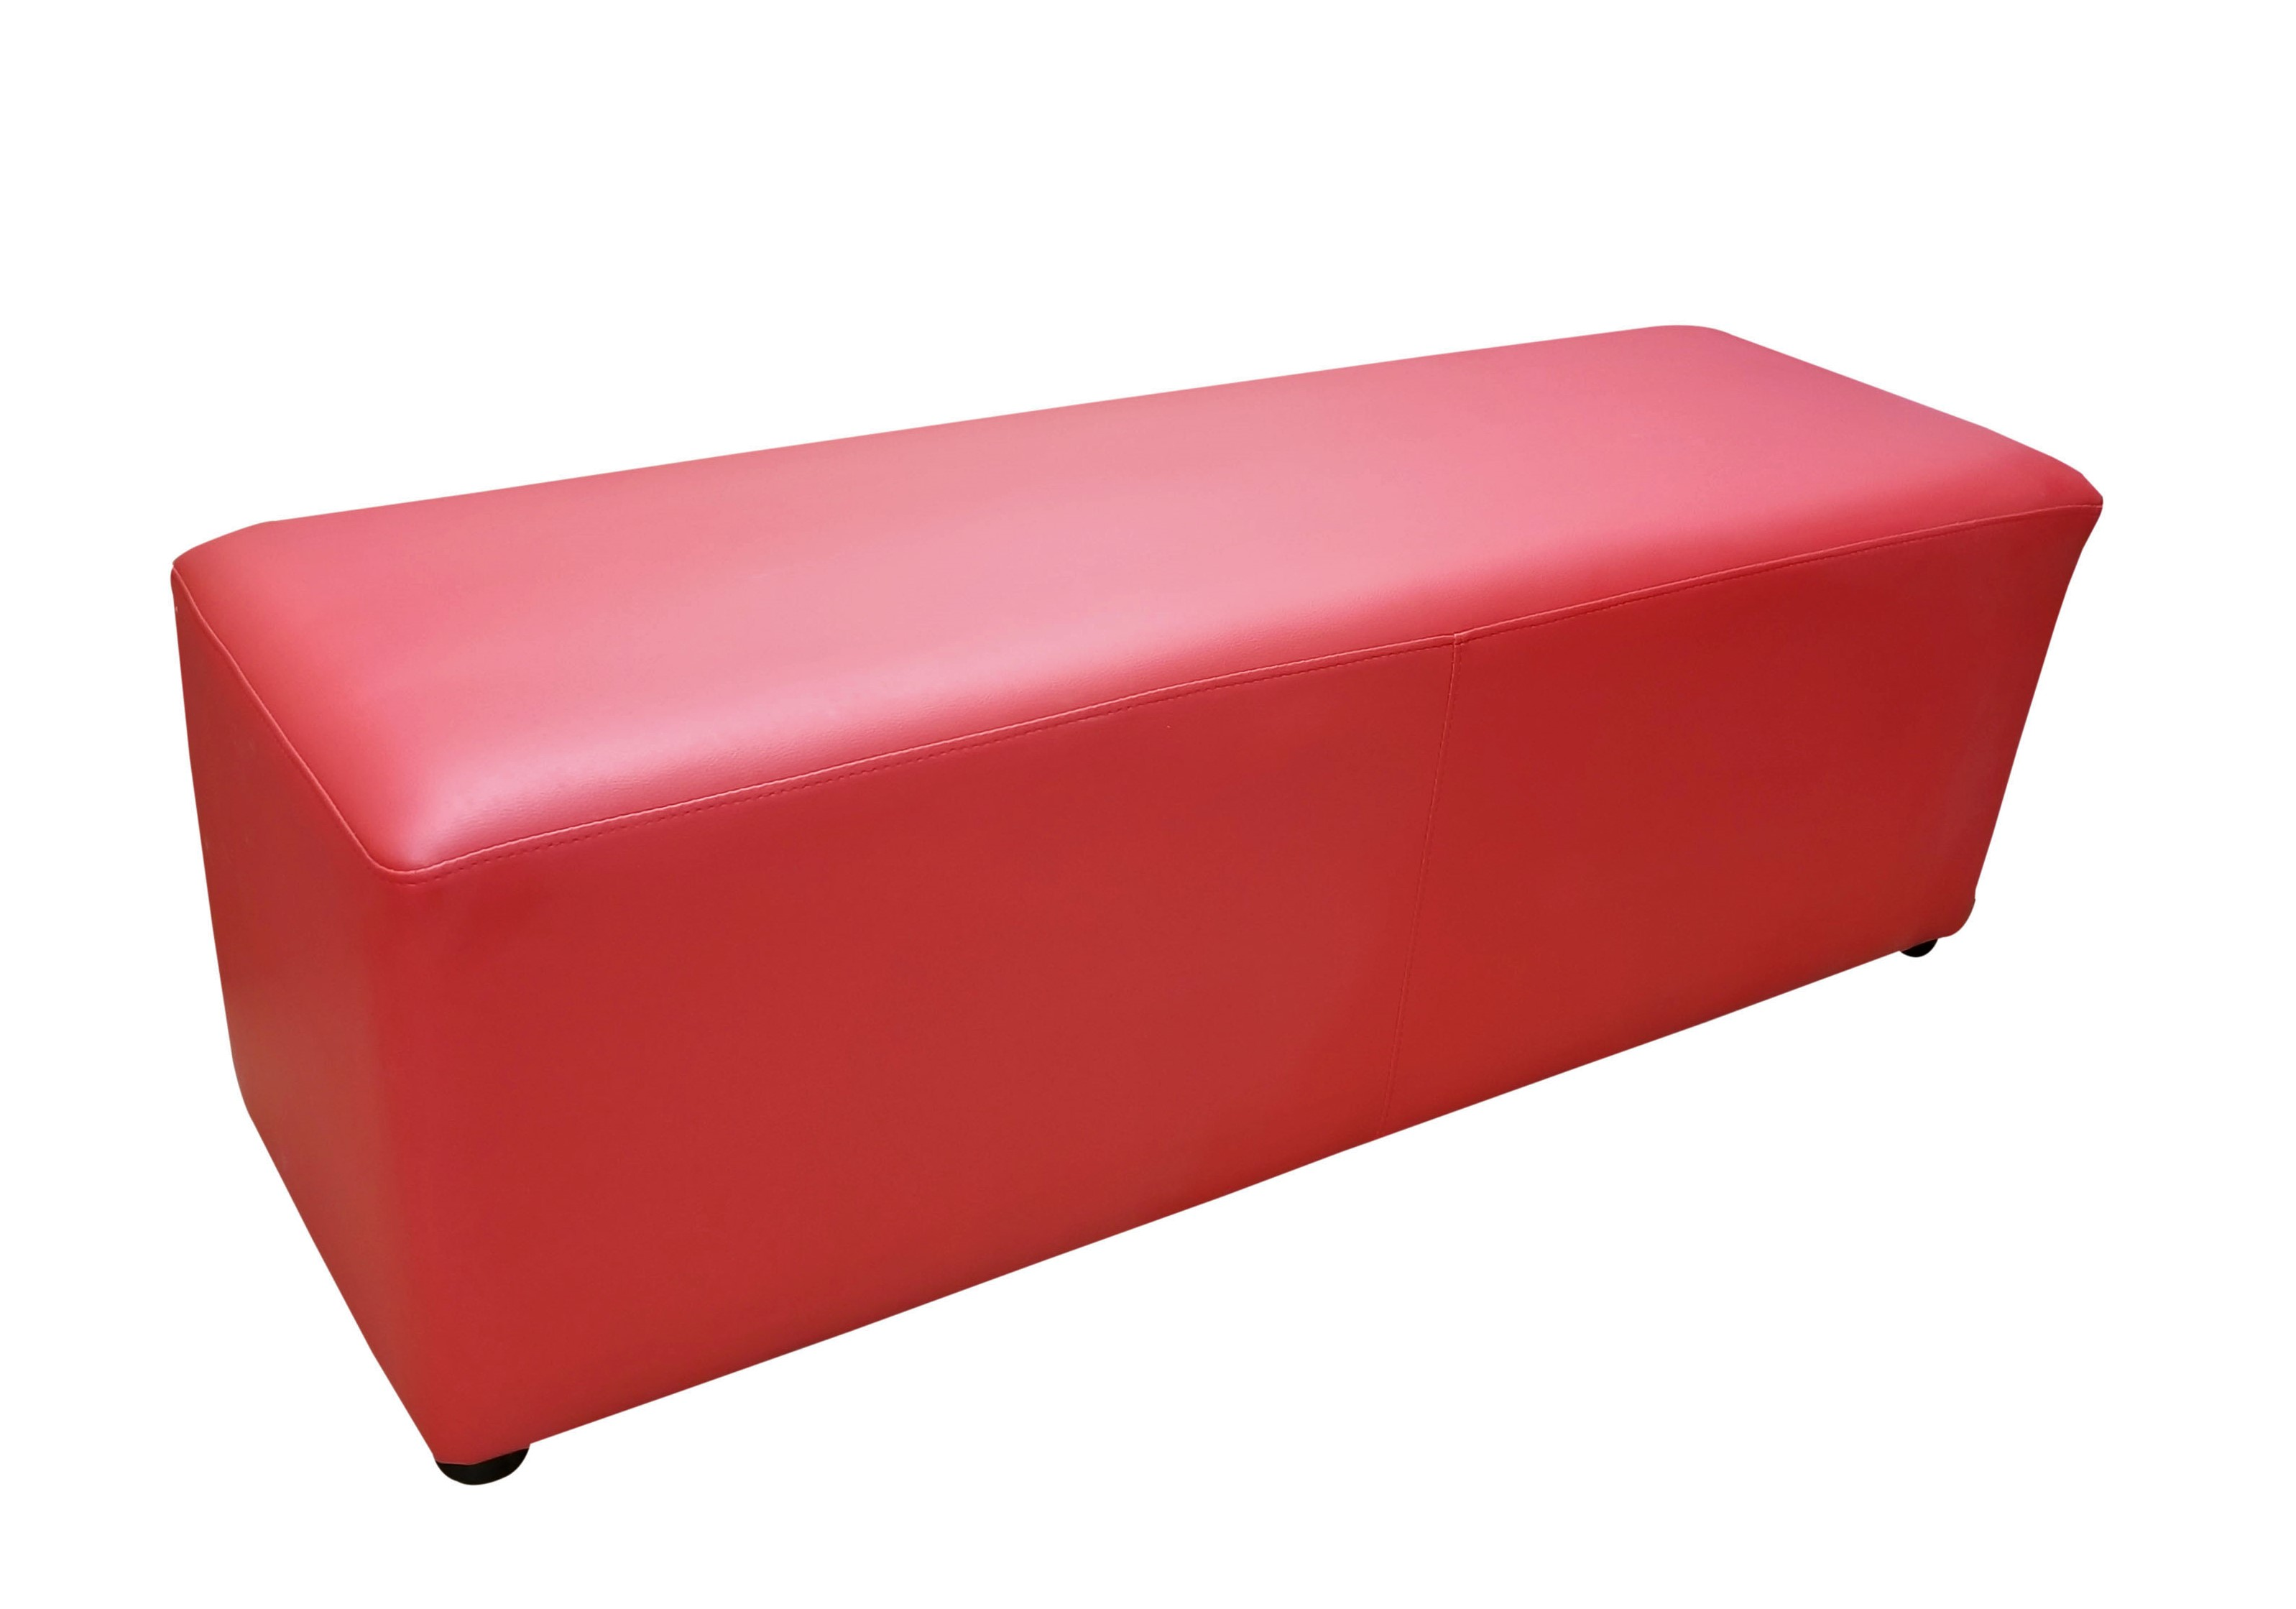 Pouf_Rectangula_Red leather